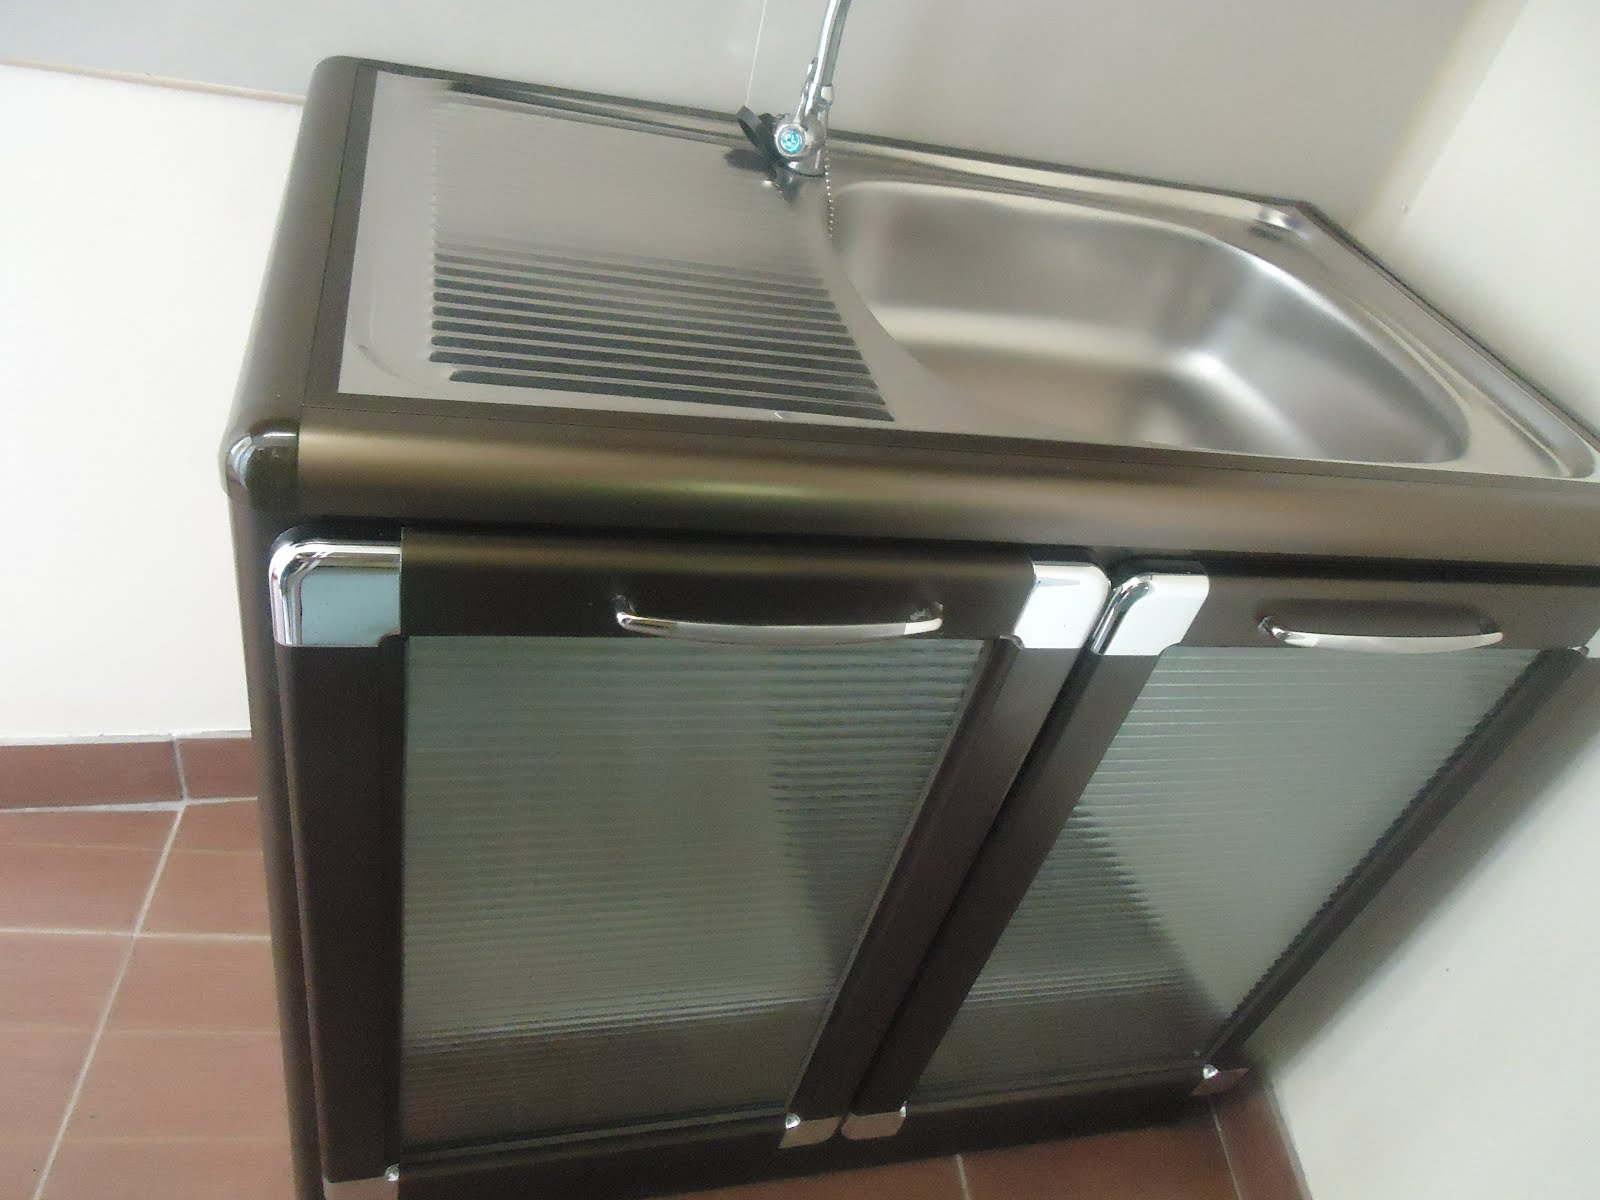 Home Sweet Home: Portable Kitchen Sink